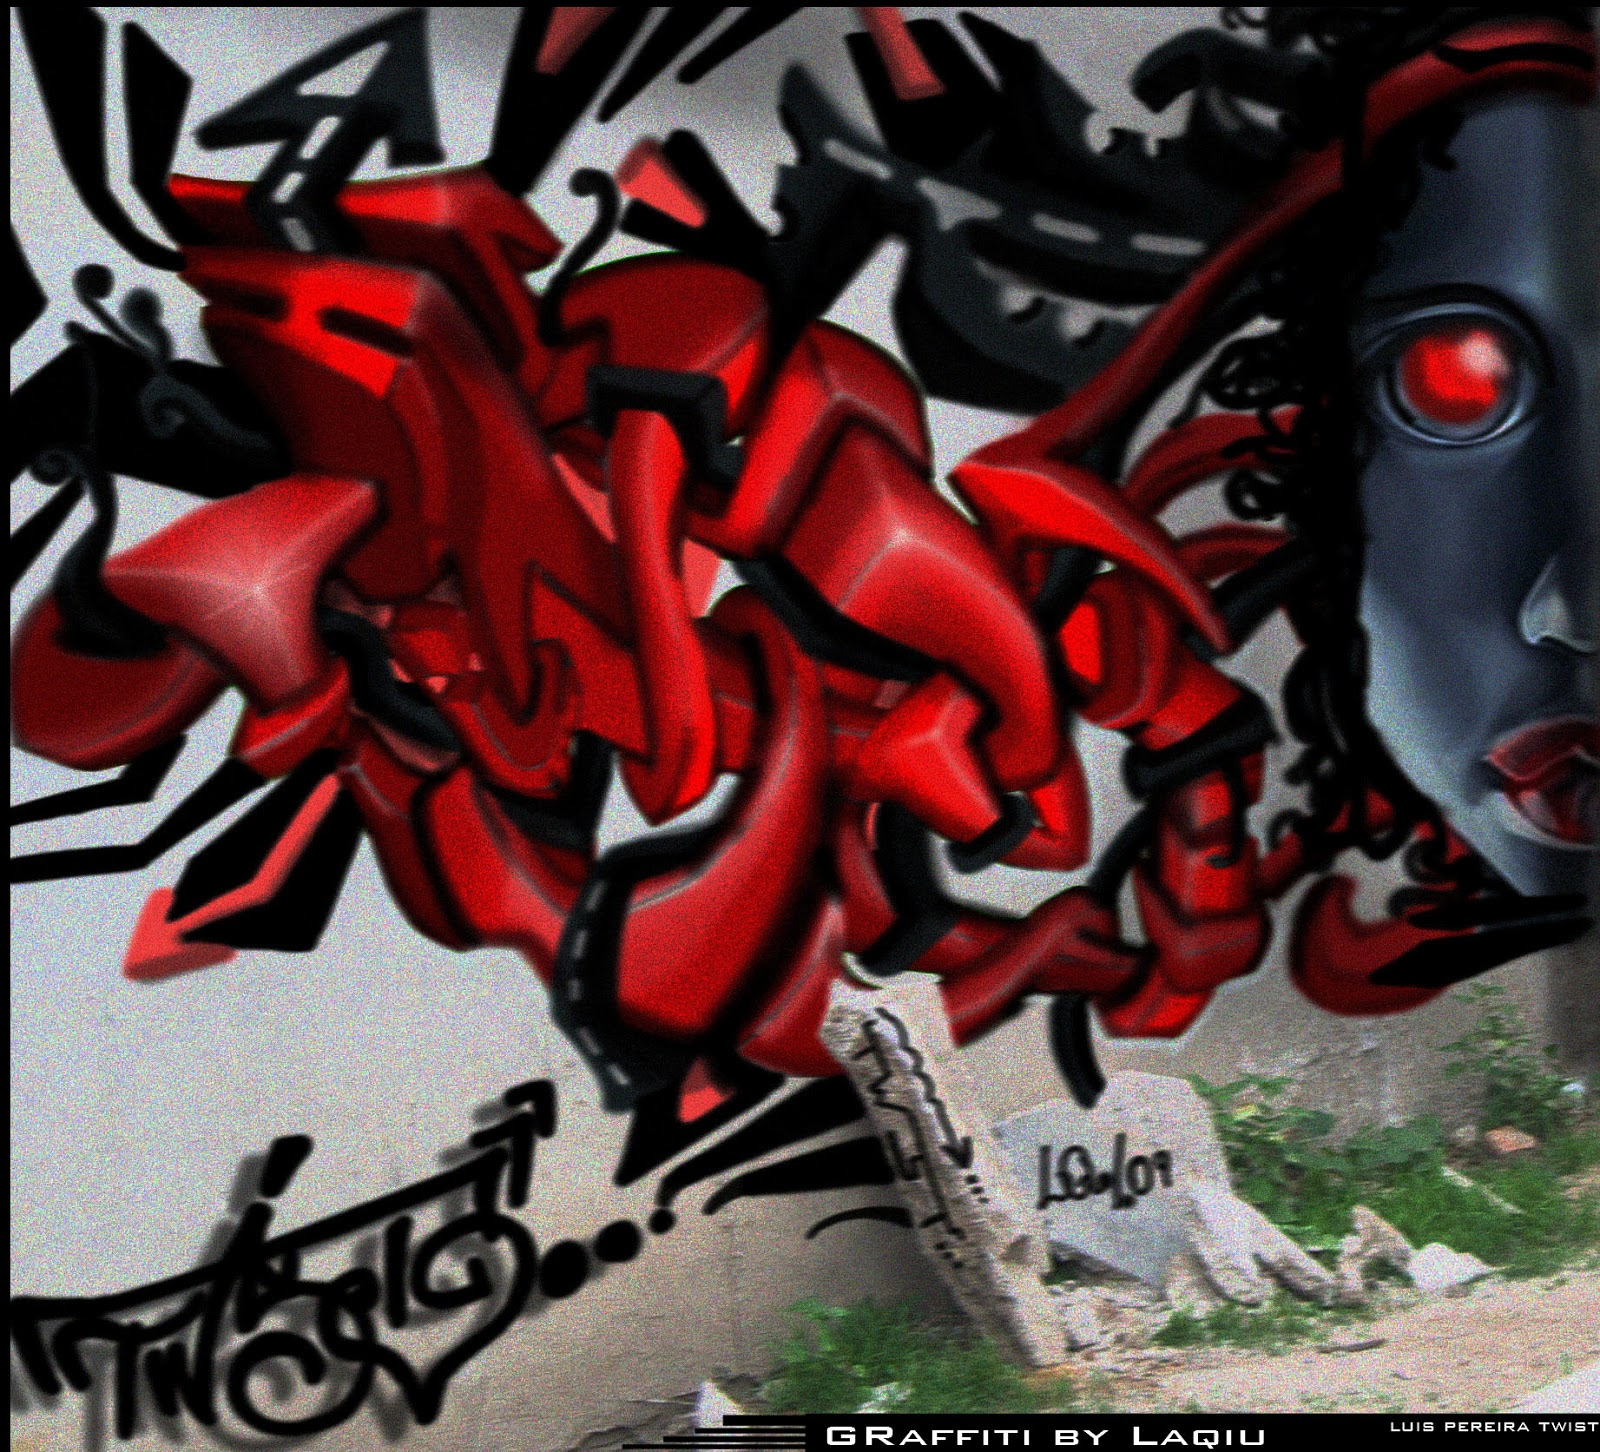 Laqiu Design By Luis Pereira Twist Graffiti 3d Wildstyle Lq Laqiu